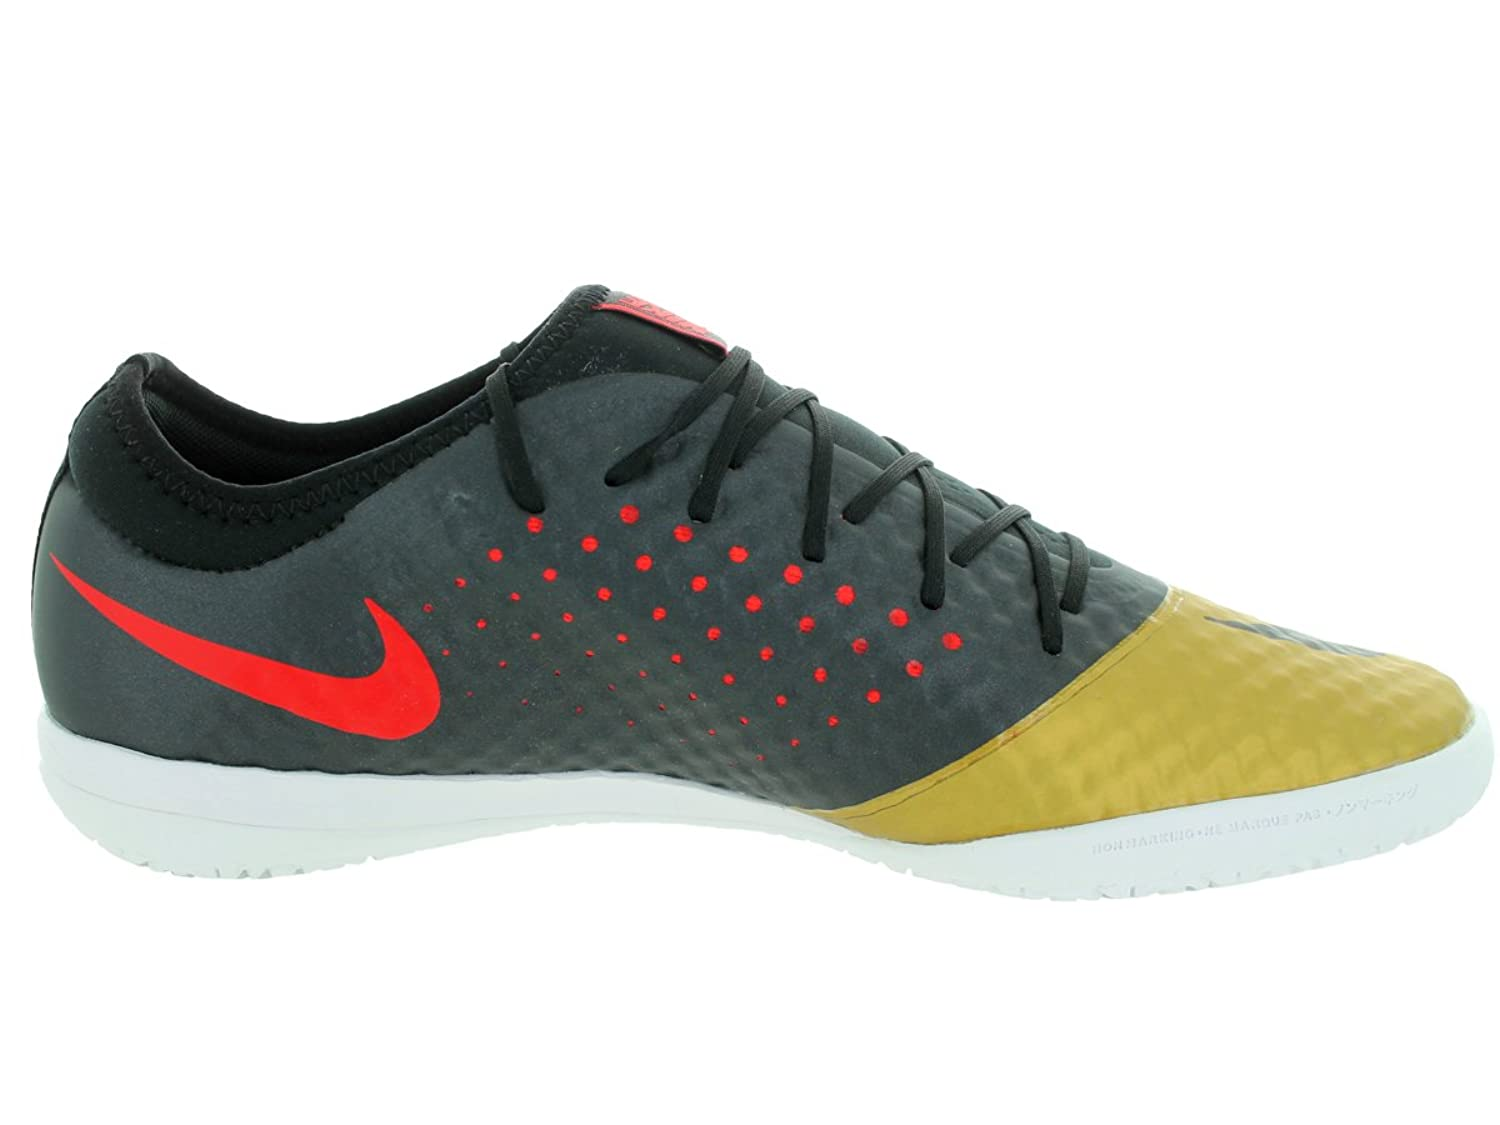 Nike Men's Mercurialx Finale IC Mtllc Gold/Blk/Chllng Rd/White Indoor  Soccer Shoe 10. 5 Men US: Buy Online at Low Prices in India - Amazon.in